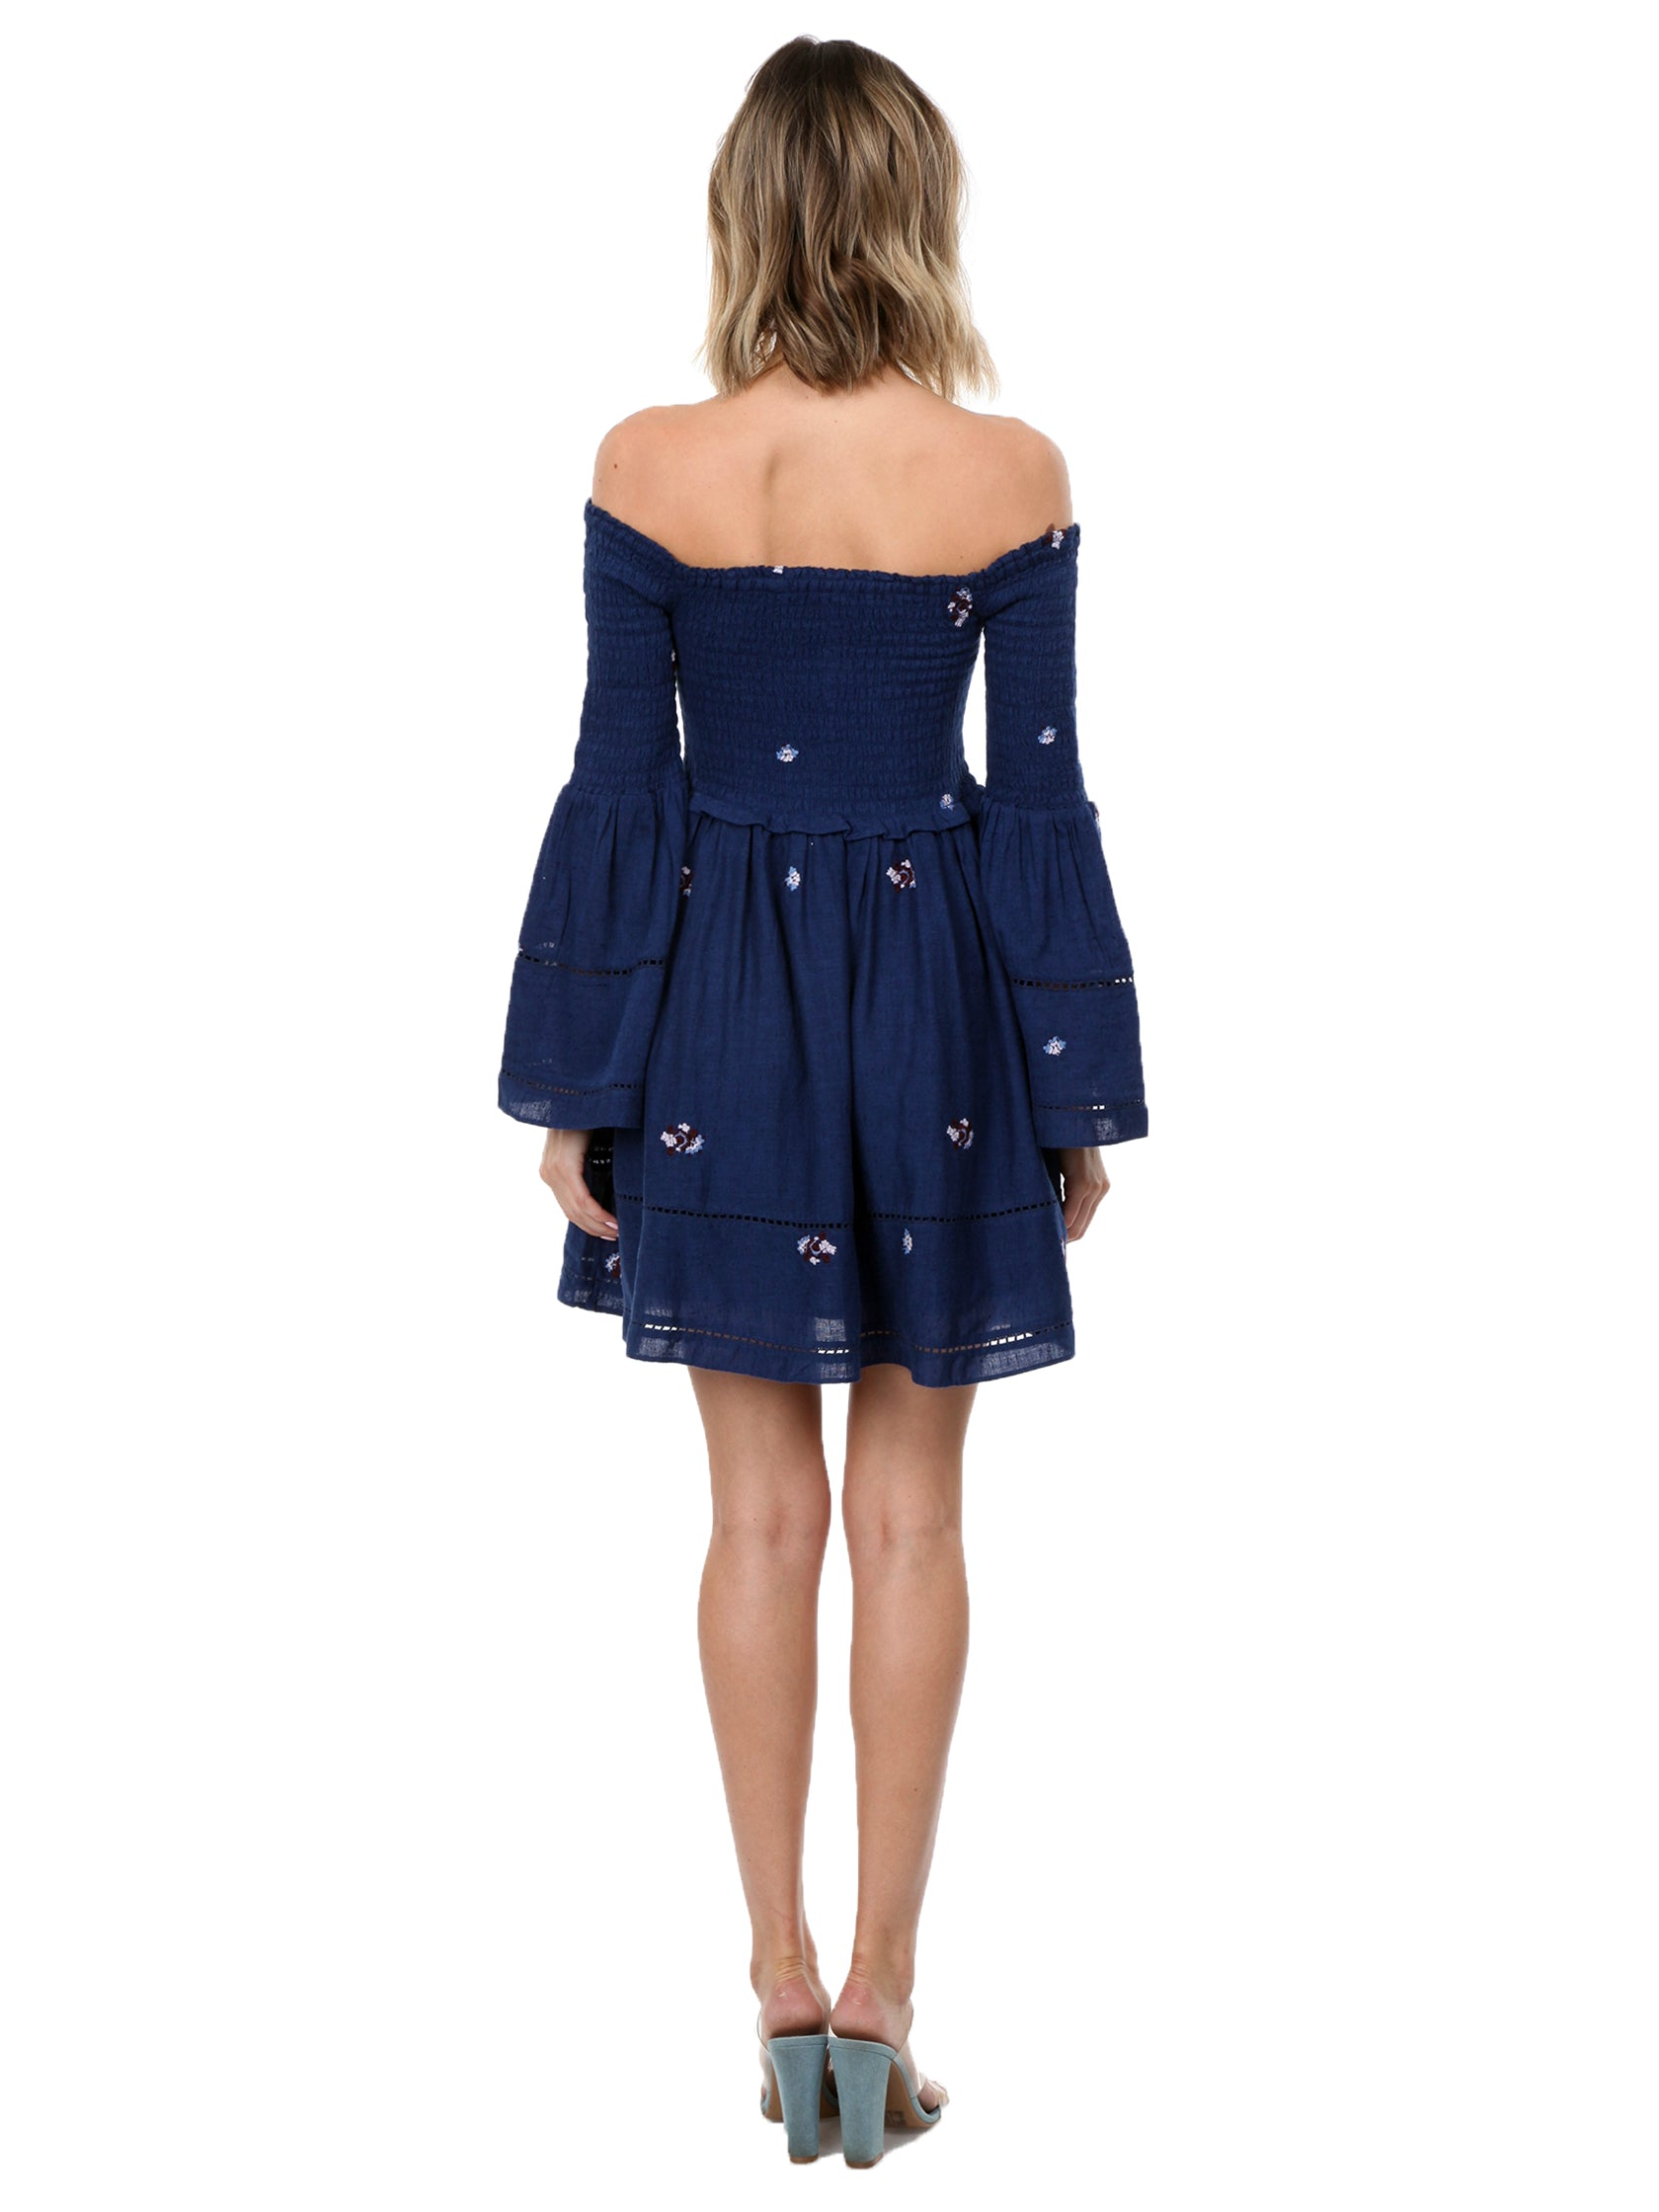 Women wearing a dress rental from Free People called Counting Daisies Embroidered Off The Shoulder Dress